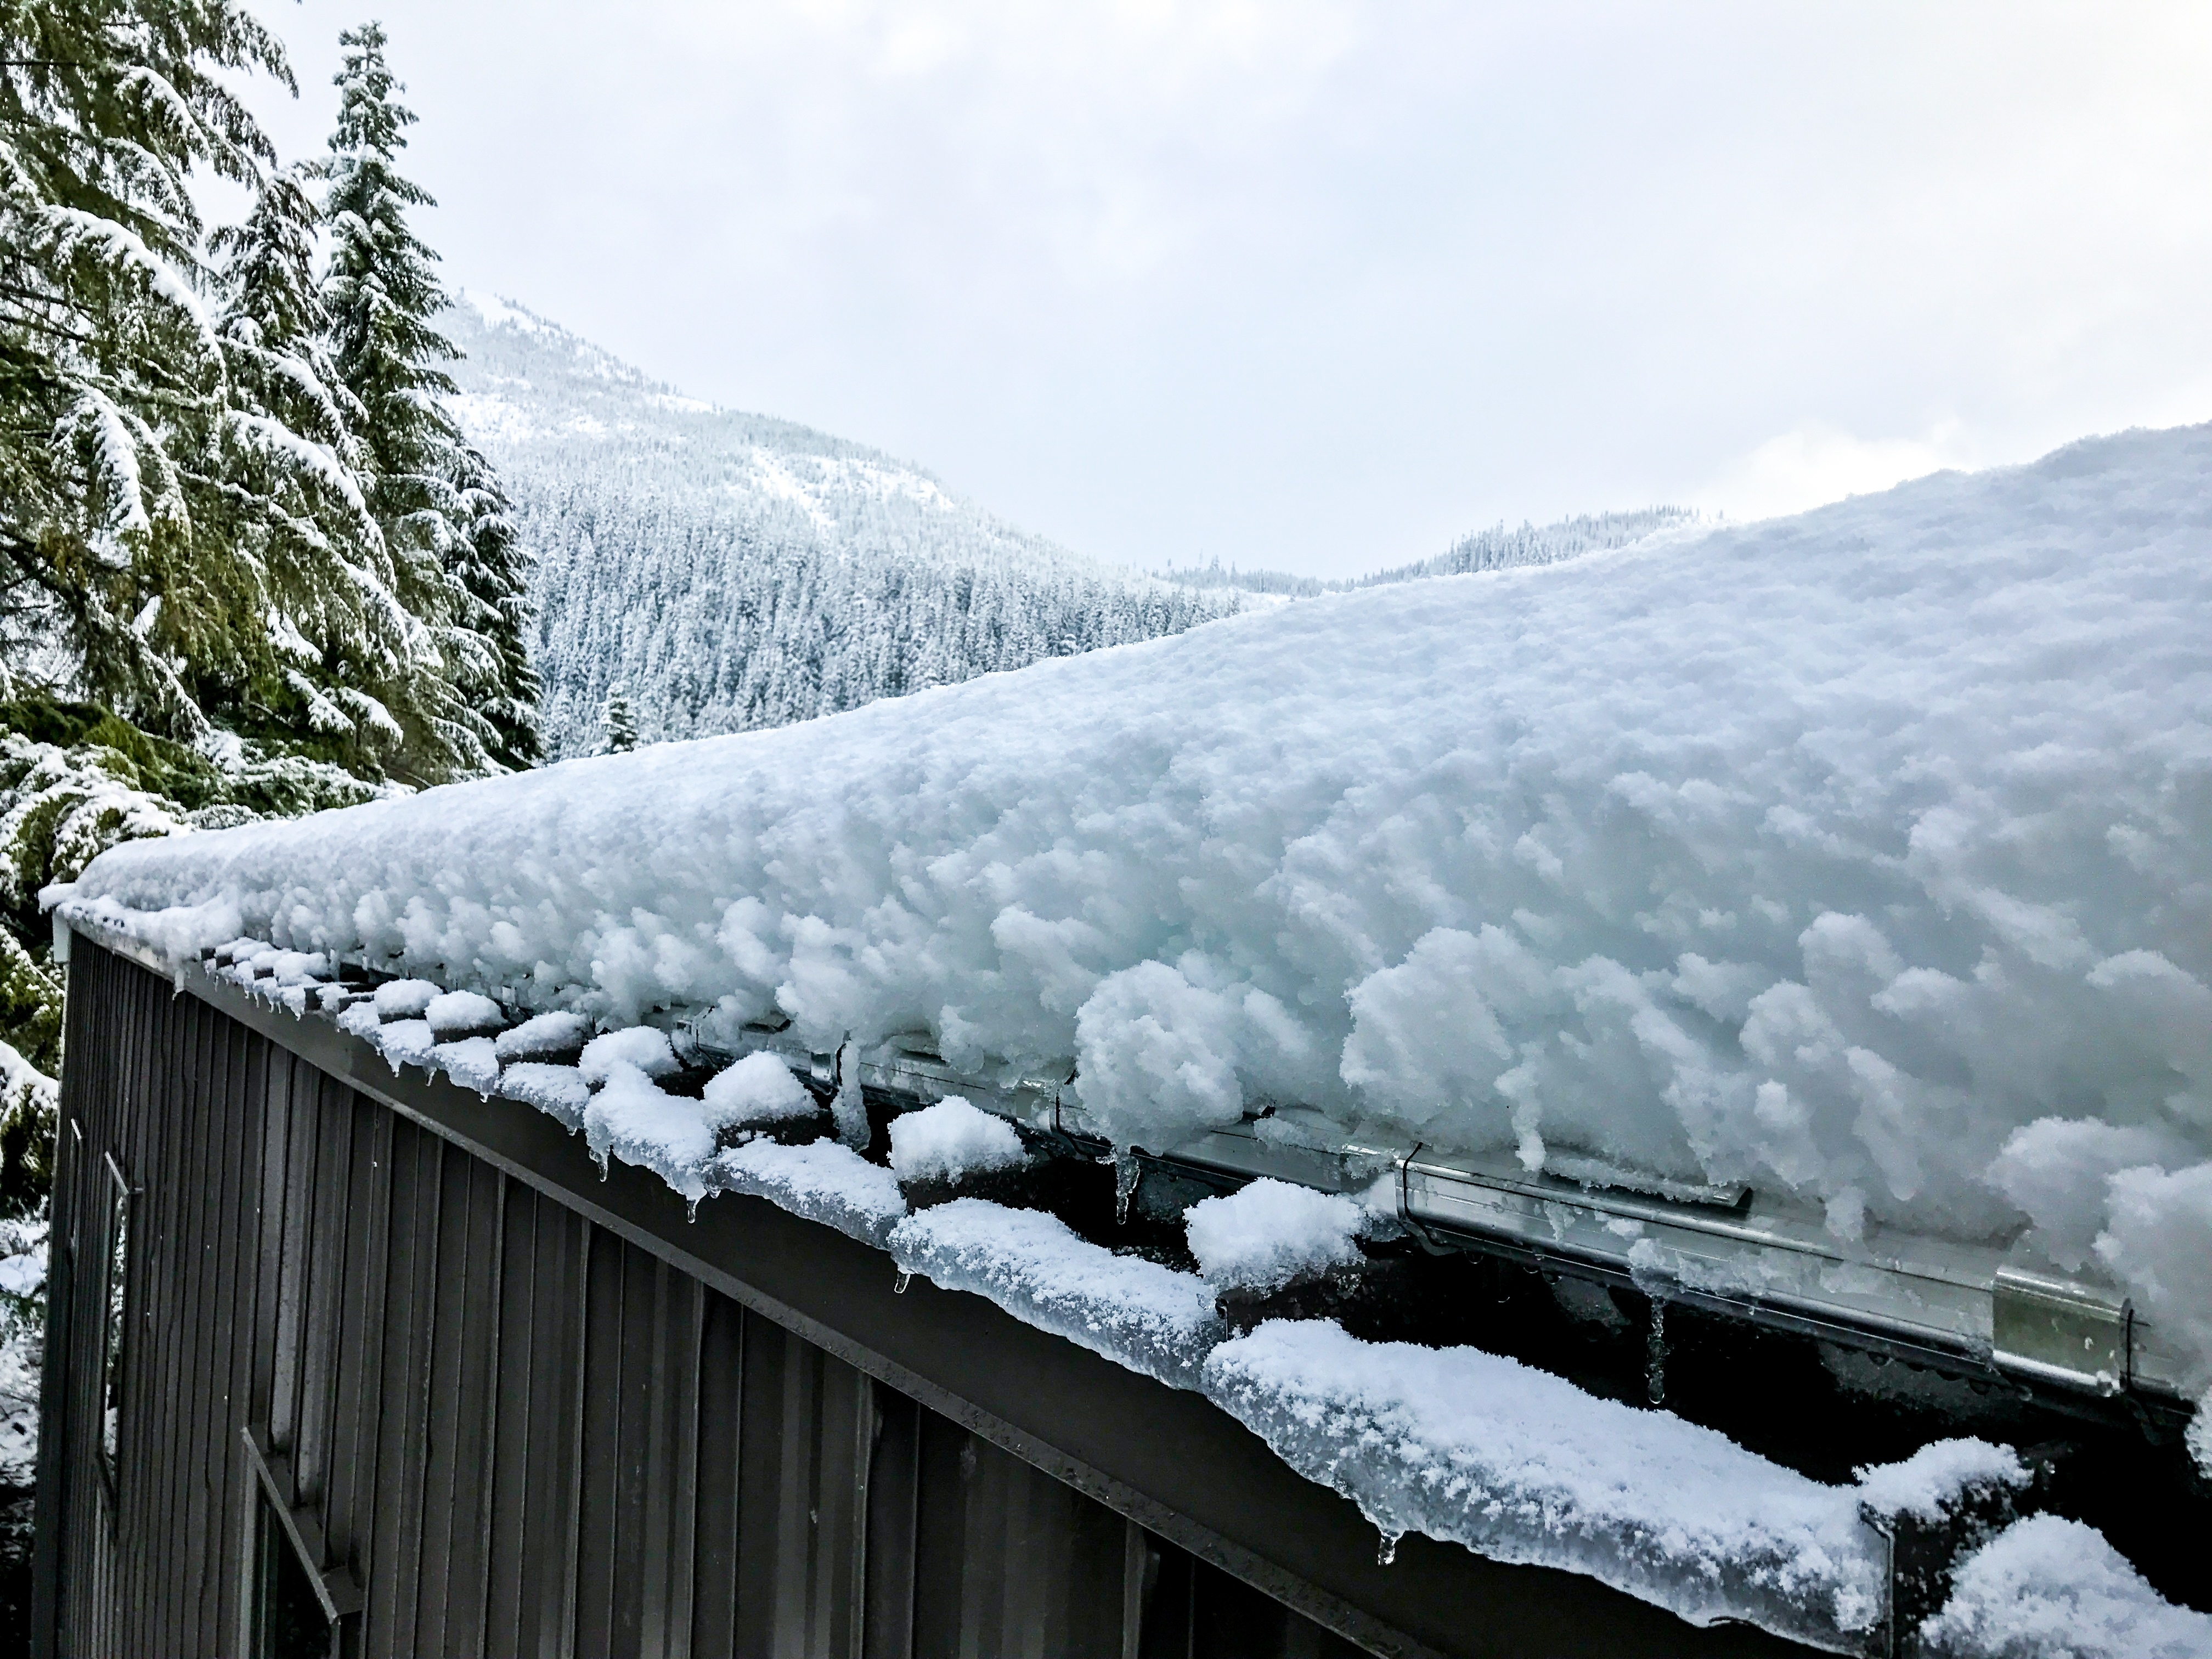 Snow guards, Snow retention systems, metal roof clips for standing seam roofs